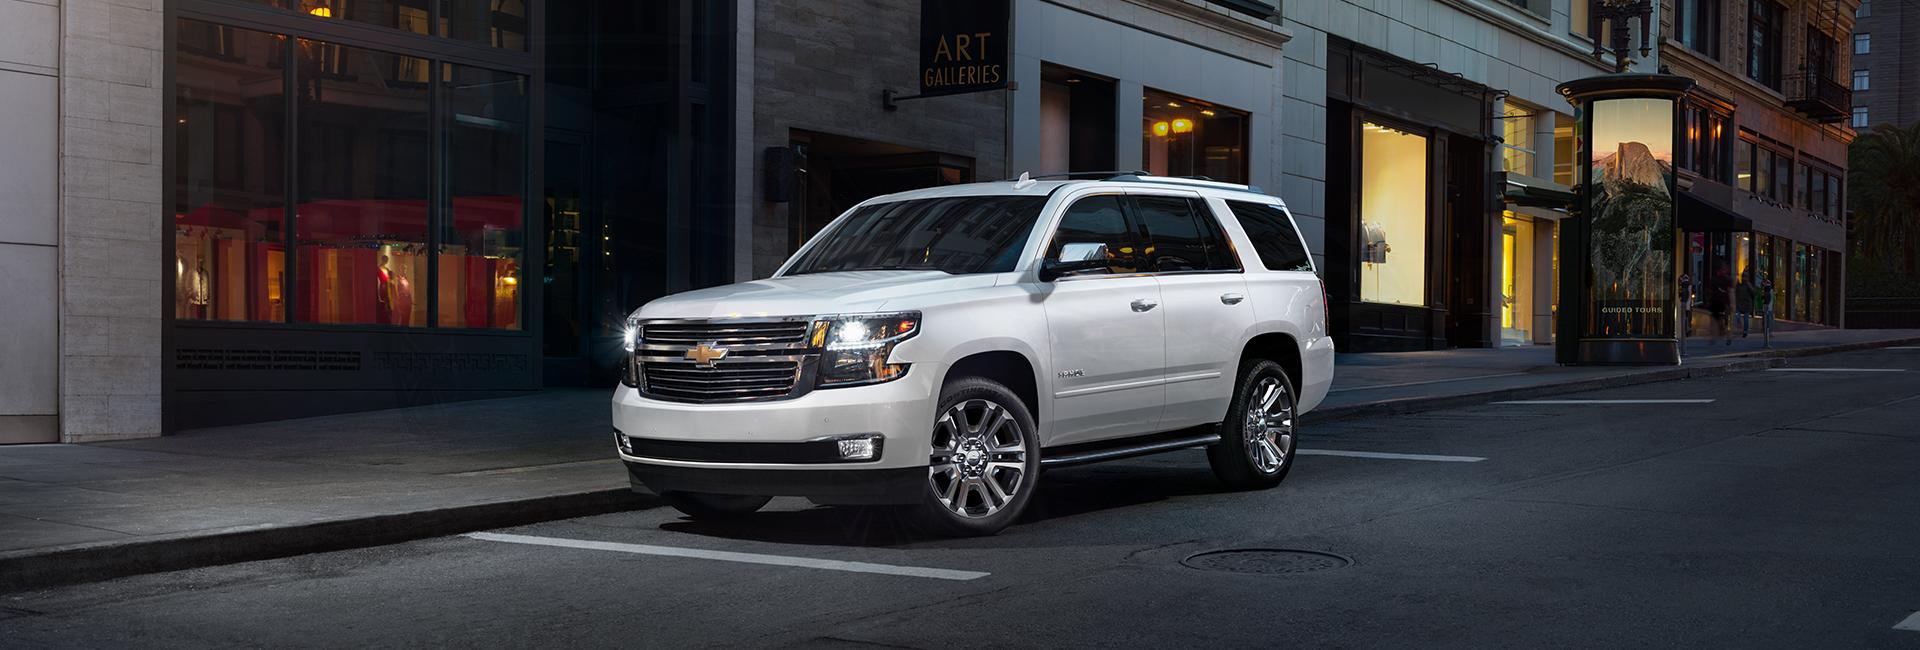 Picture of the 2020 Chevy Tahoe for sale at Spitzer Chevy Lordstown.